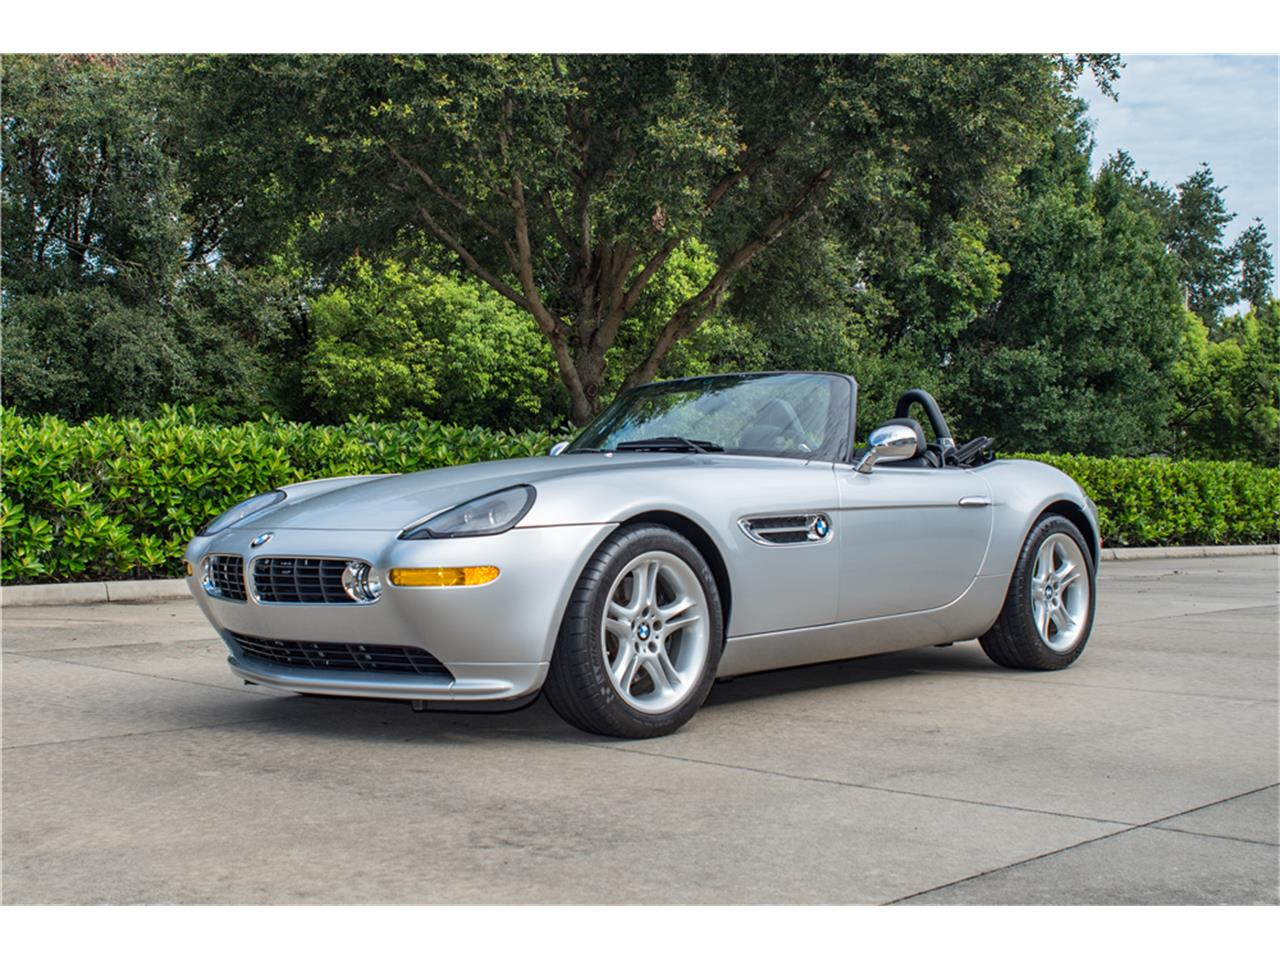 Classic BMW Z8 for Sale on ClassicCars.com